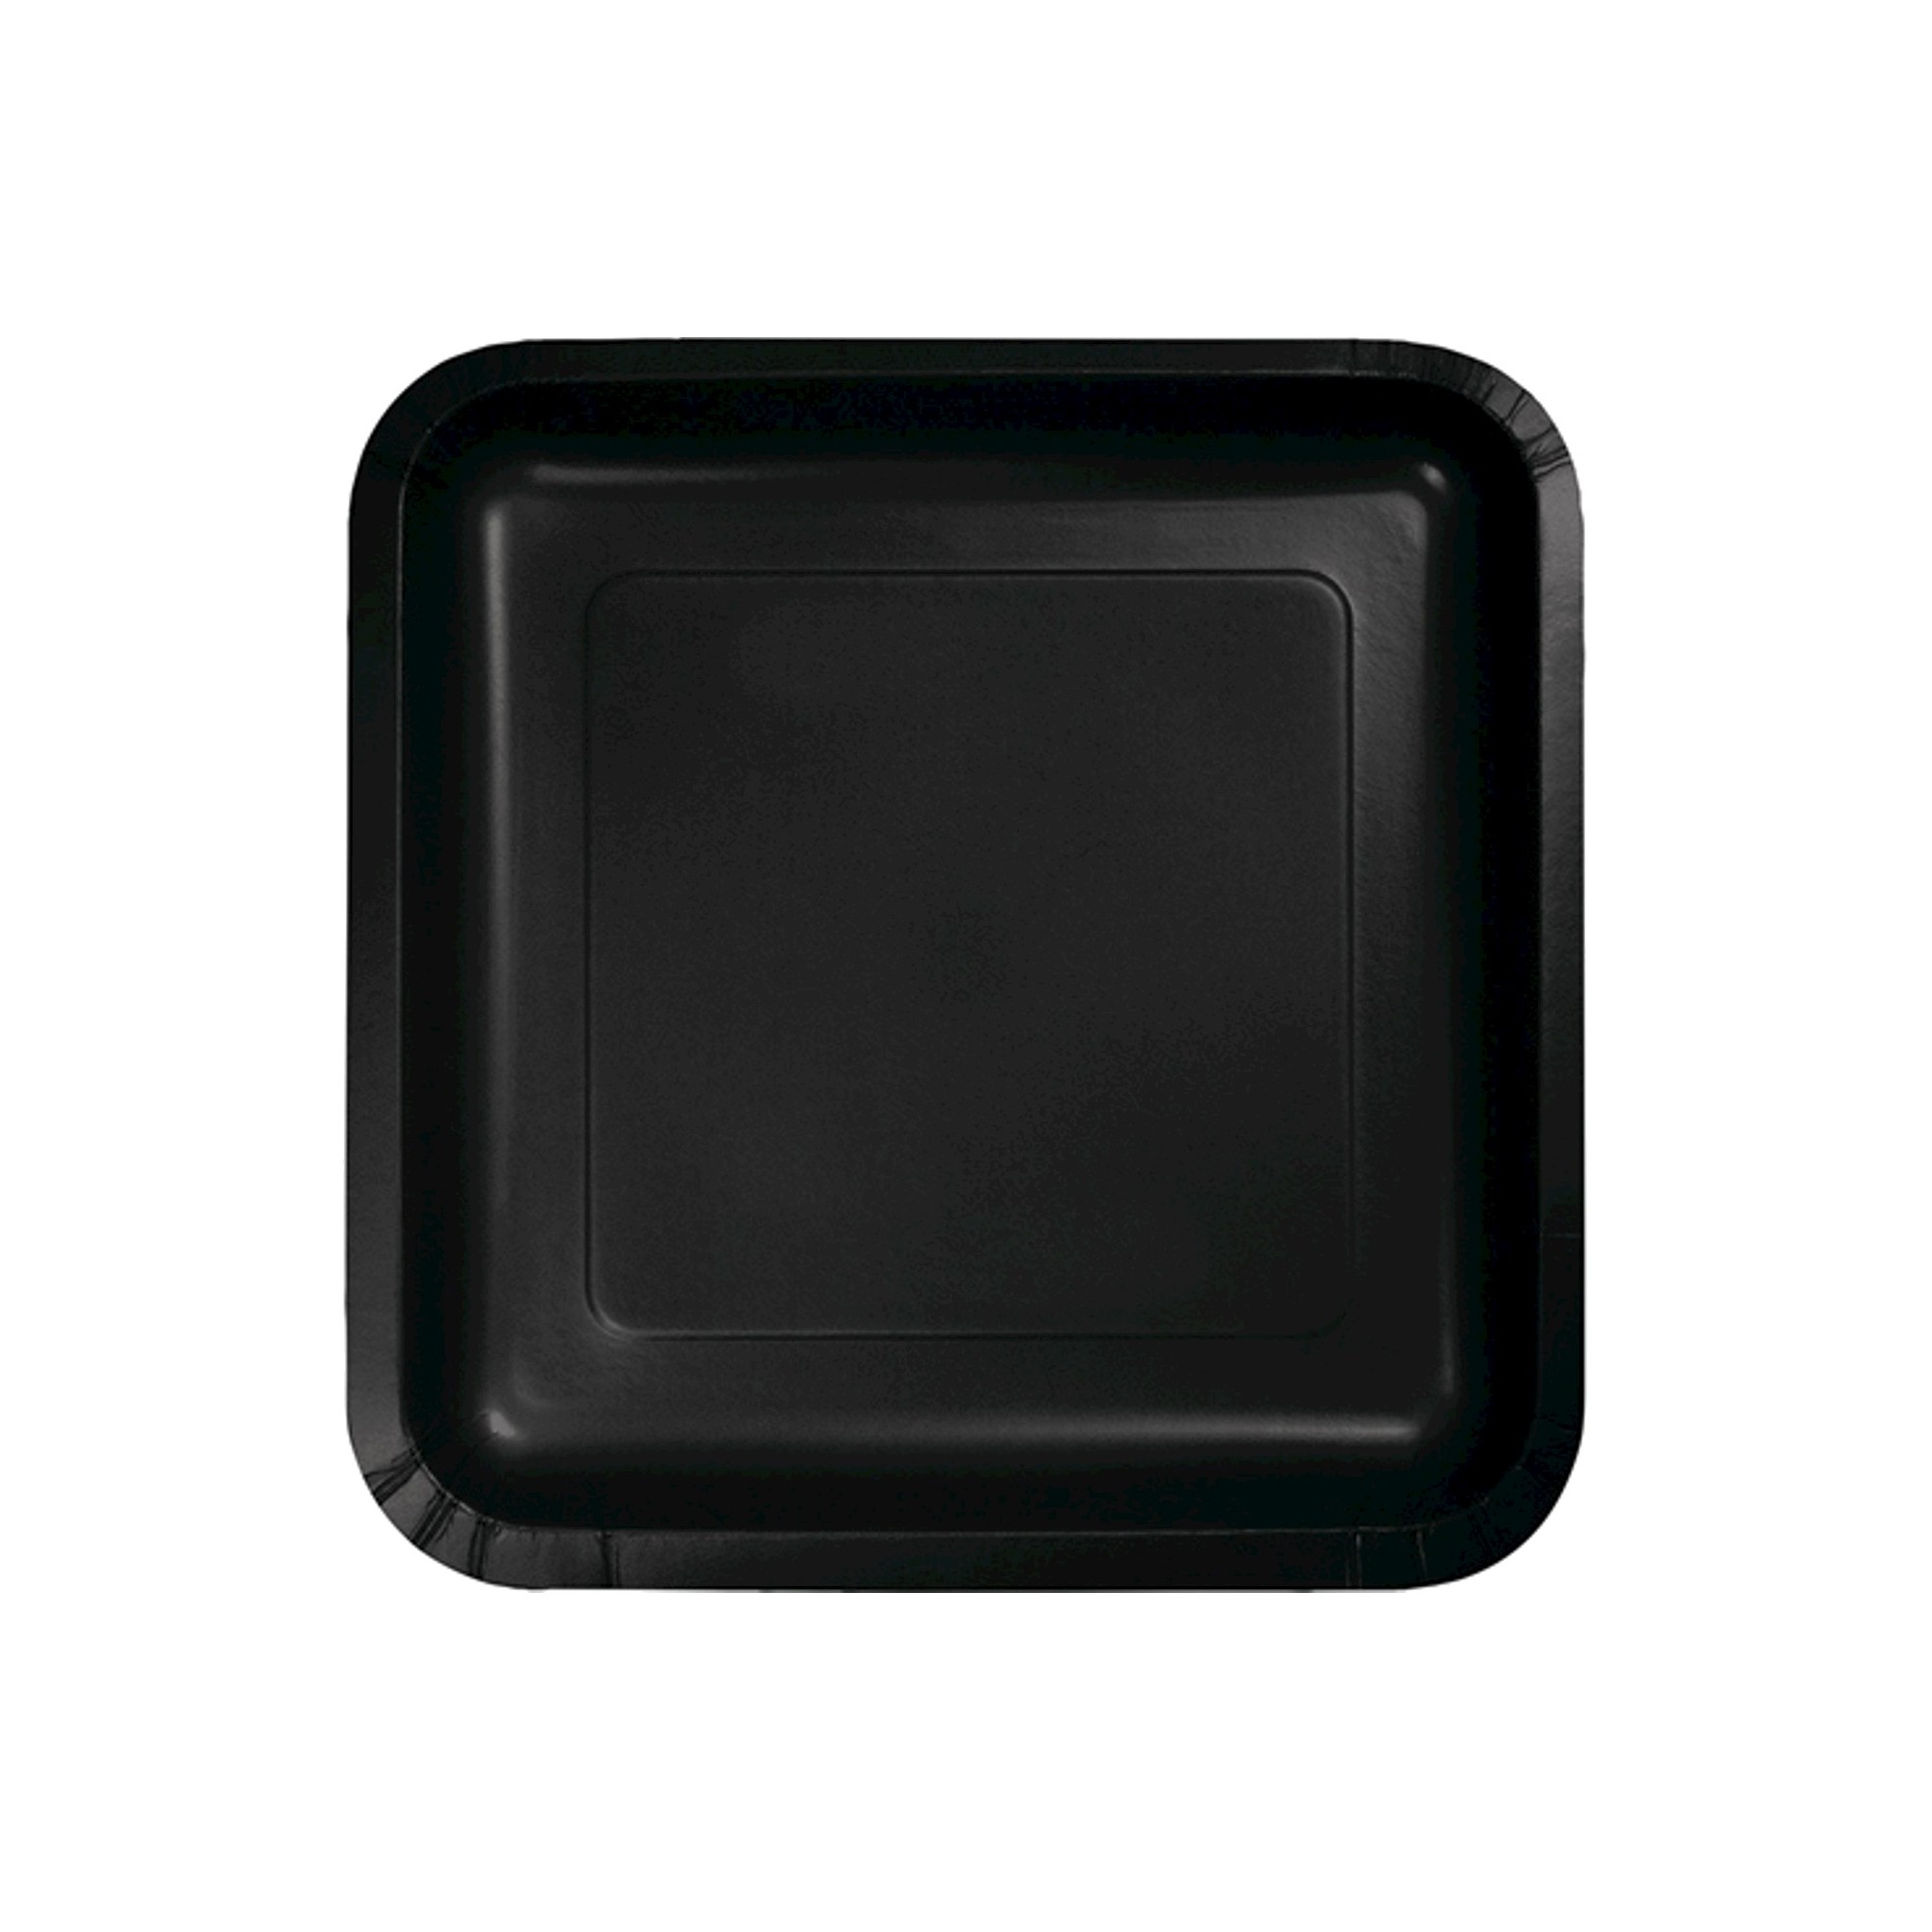 18ct Black Disposable Plates  sc 1 st  Pinterest & 18ct Black Disposable Plates | Disposable plates and Products